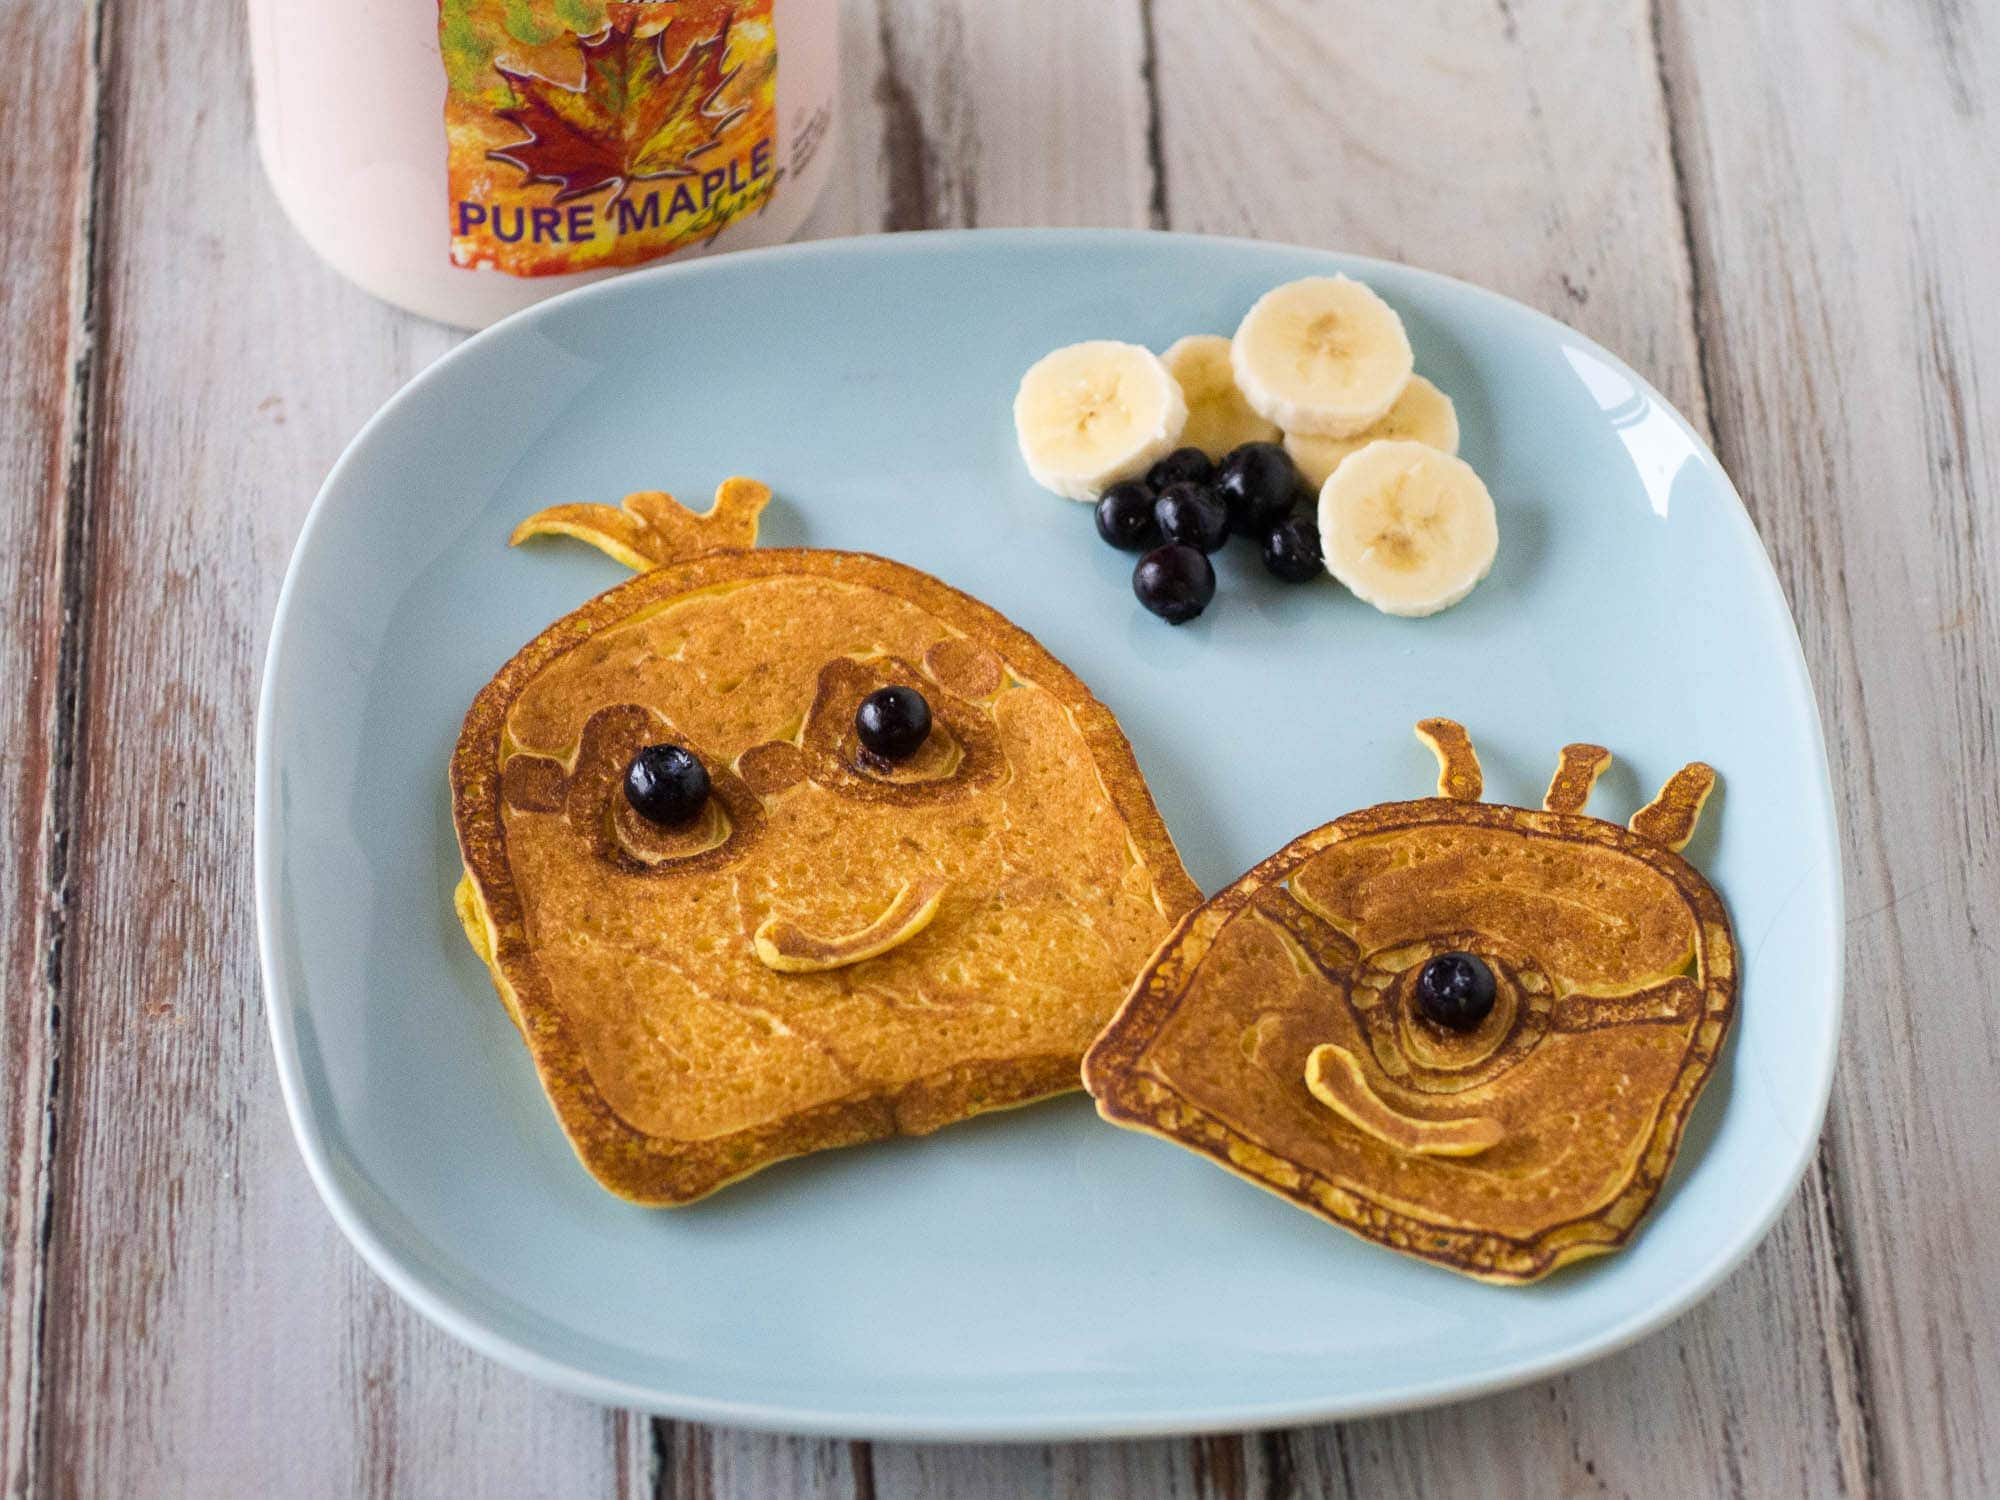 Minions pancakes easy to make minoins pancakes are the perfect meal for family movie night use pancake ccuart Gallery